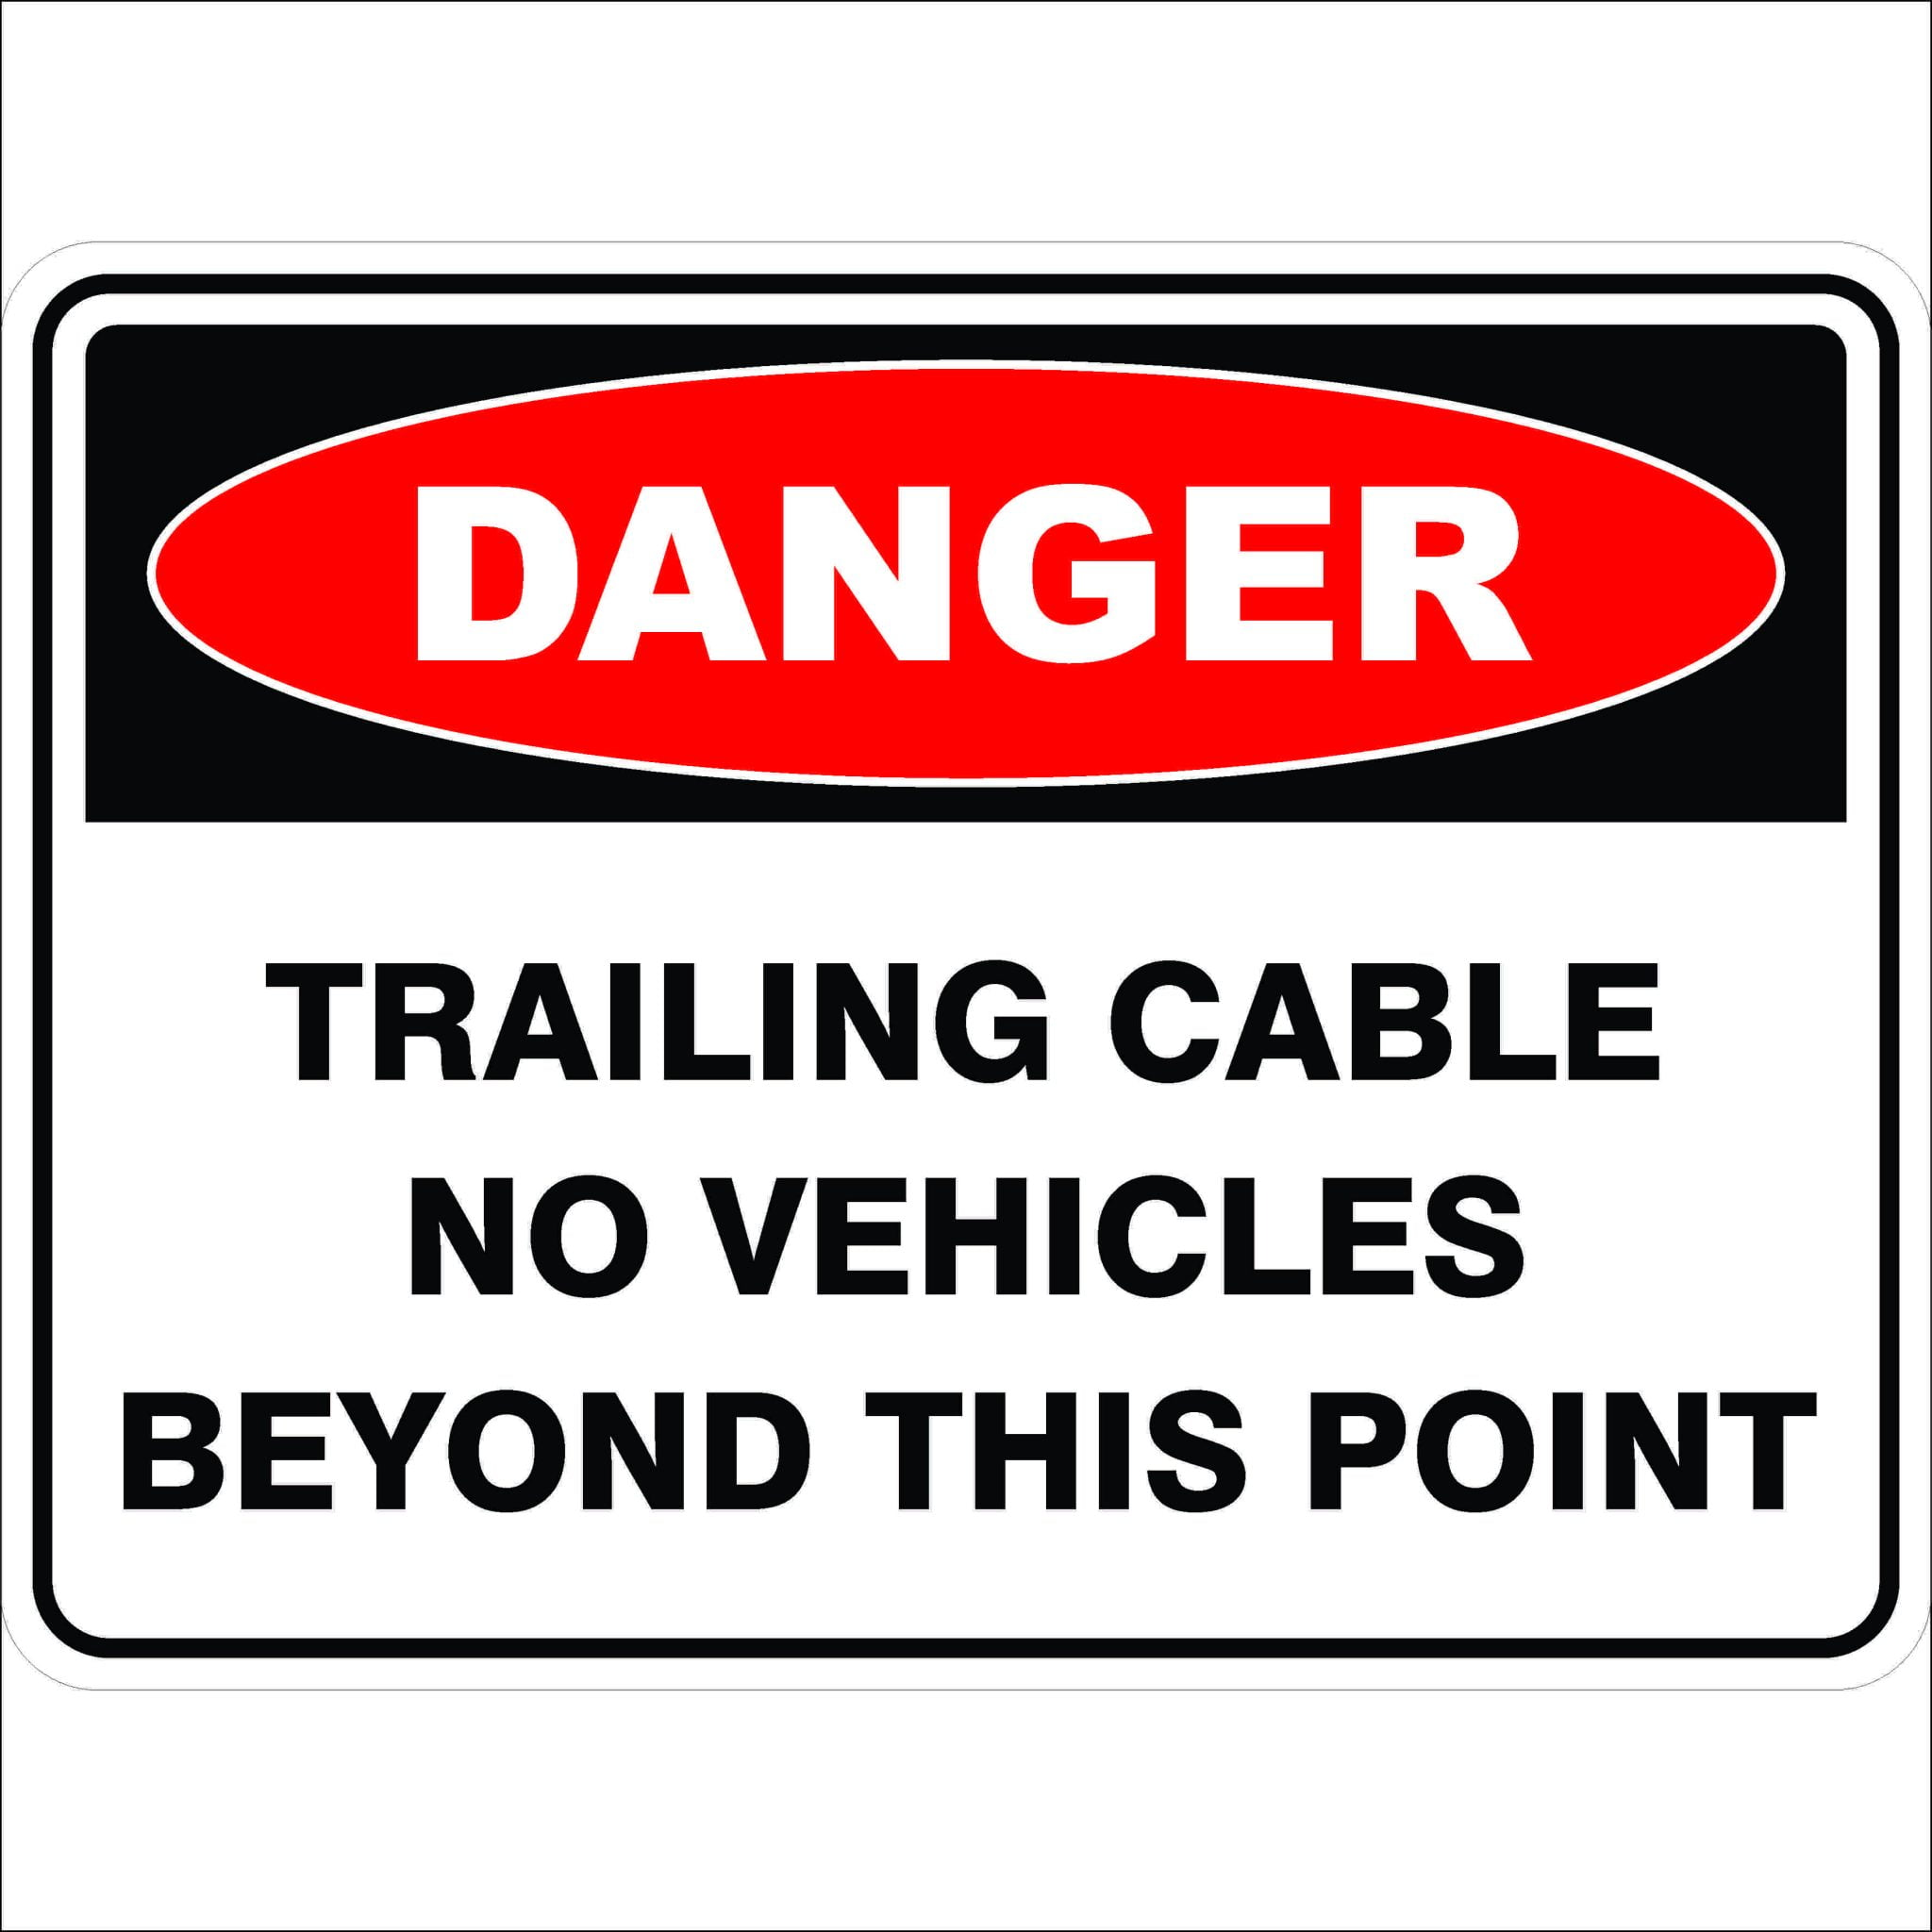 Danger Signs TRAILING CABLE NO VEHICLES BEYOND THIS POINT